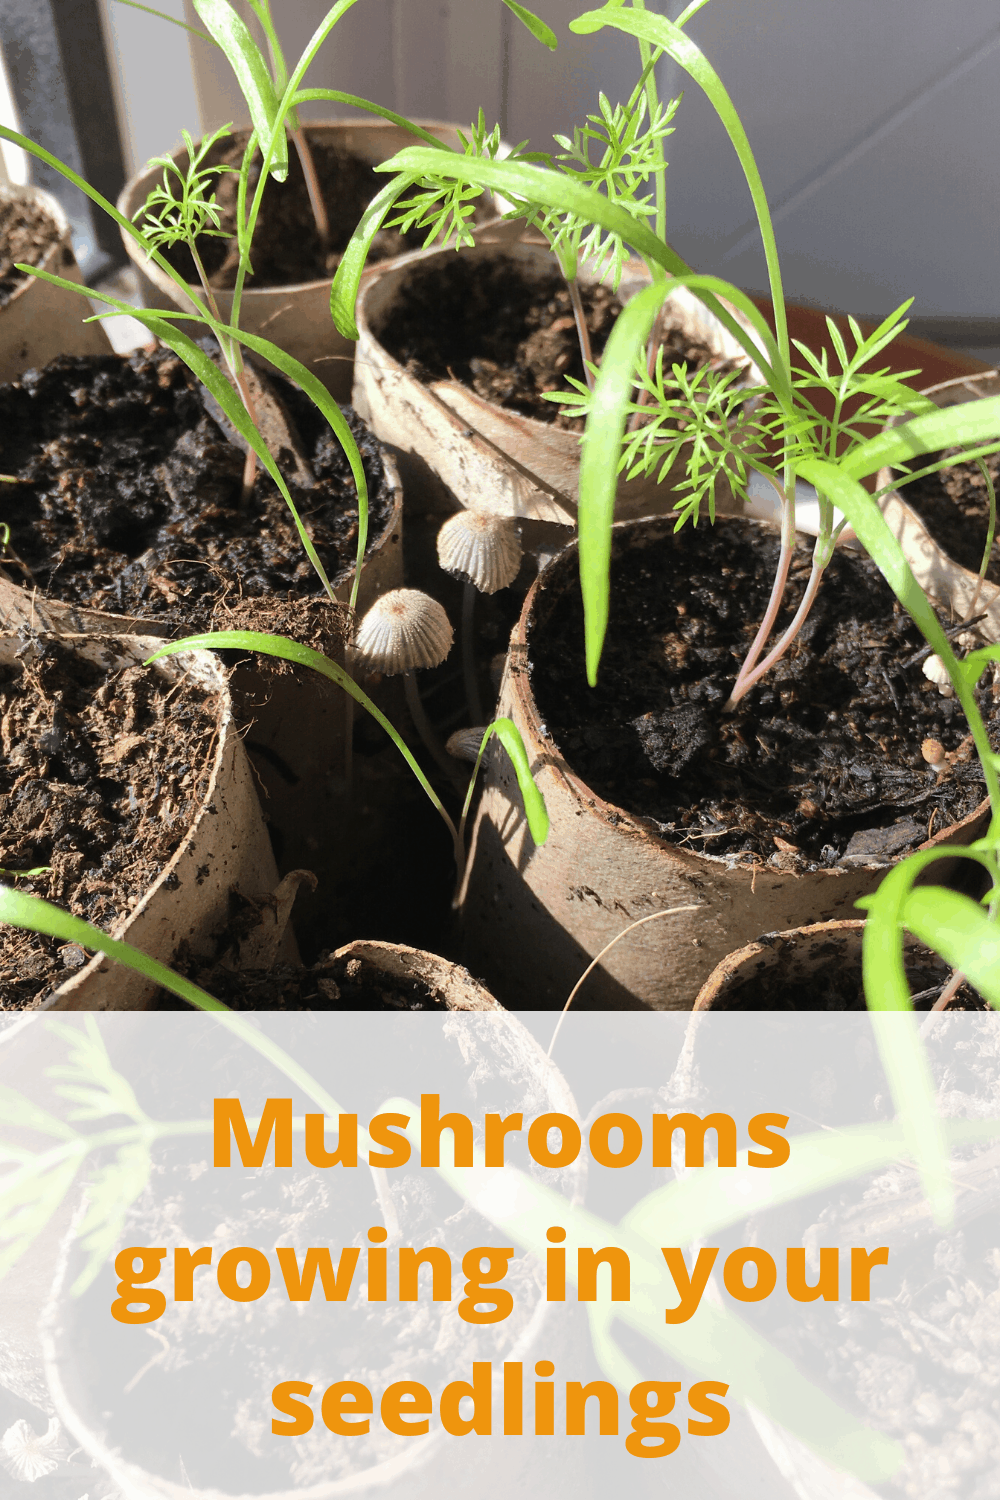 mushrooms are fine and not harmful to your plants